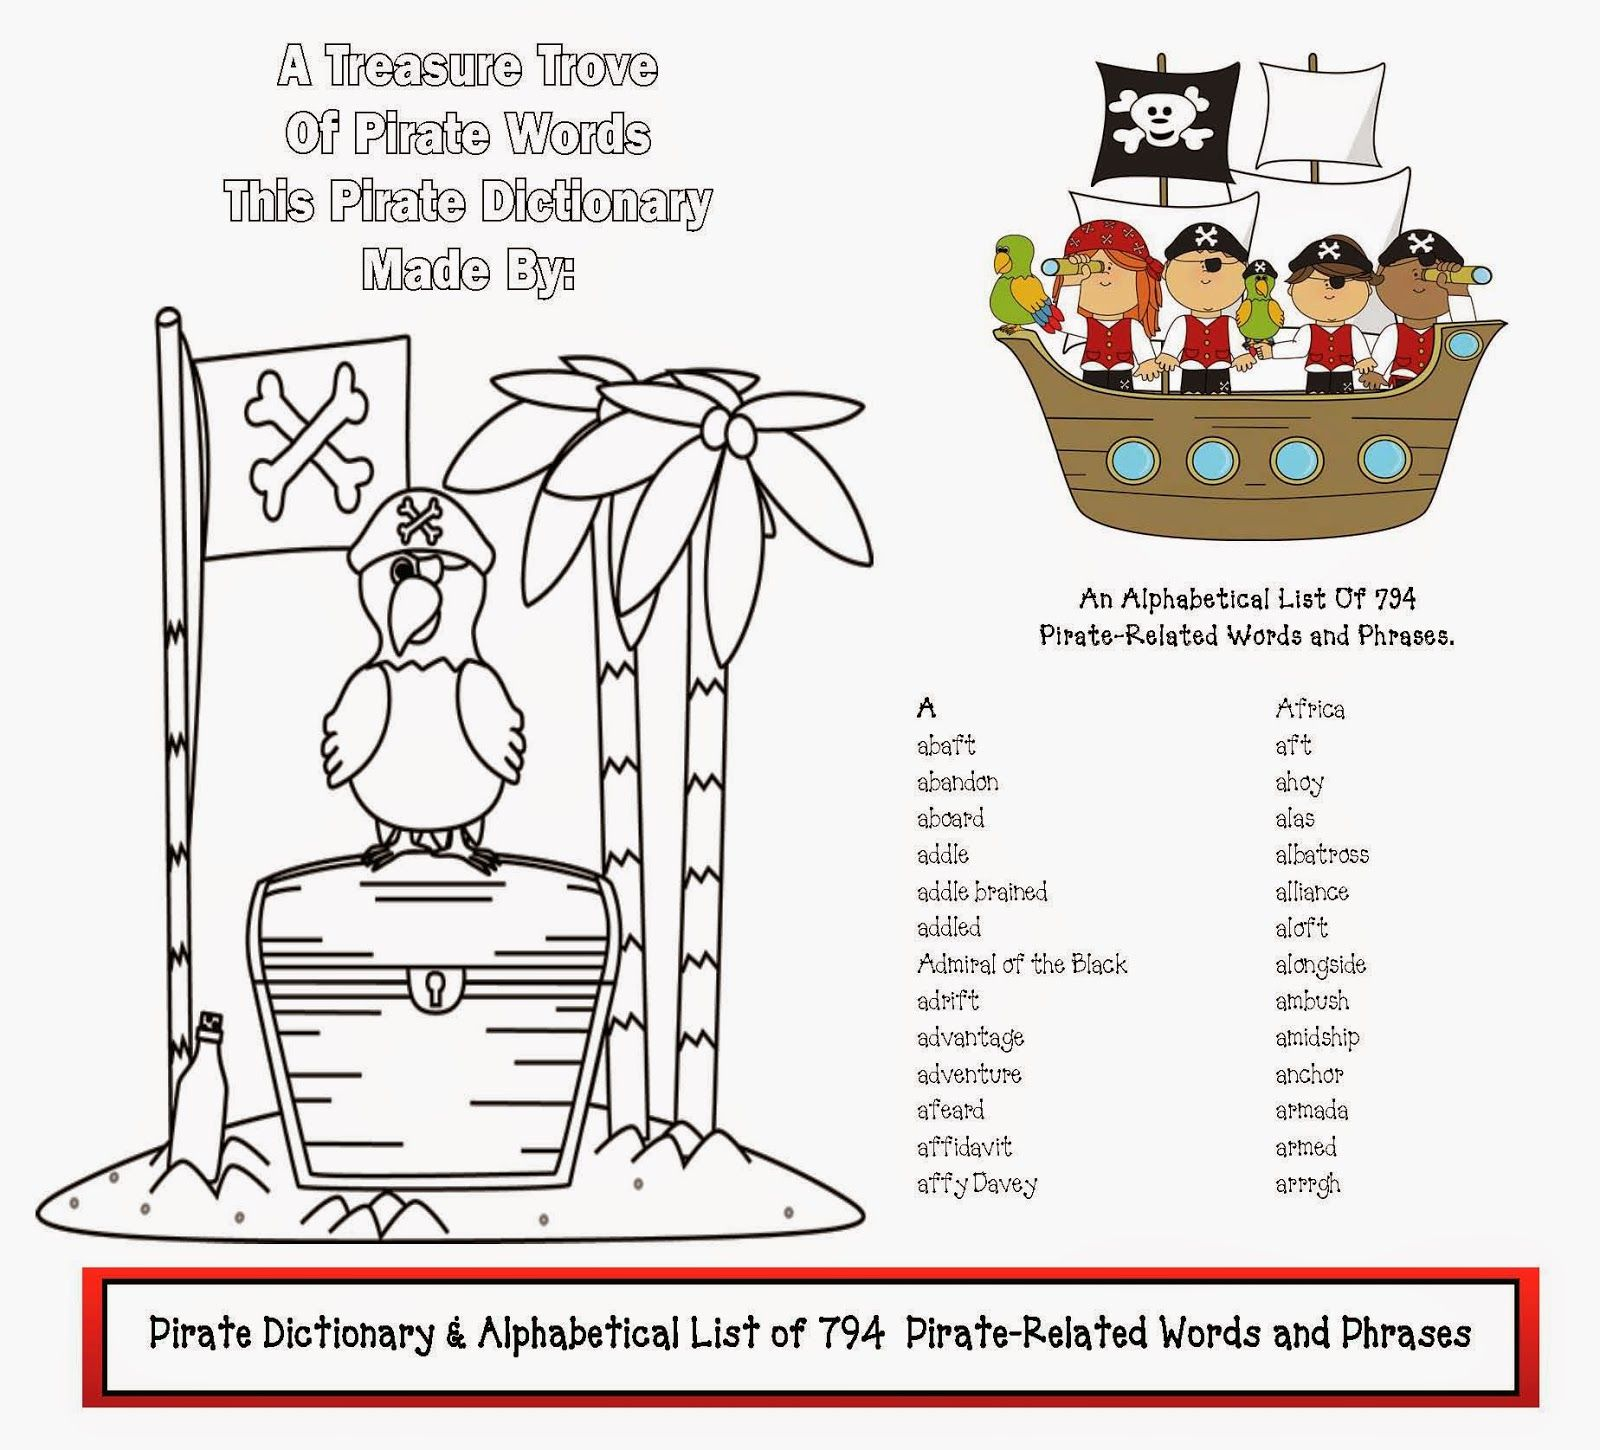 Dictionary Of Pirate Words Phrases Classroom Freebies Pirate Words Pirate Phrases Classroom Freebies [ 1450 x 1600 Pixel ]